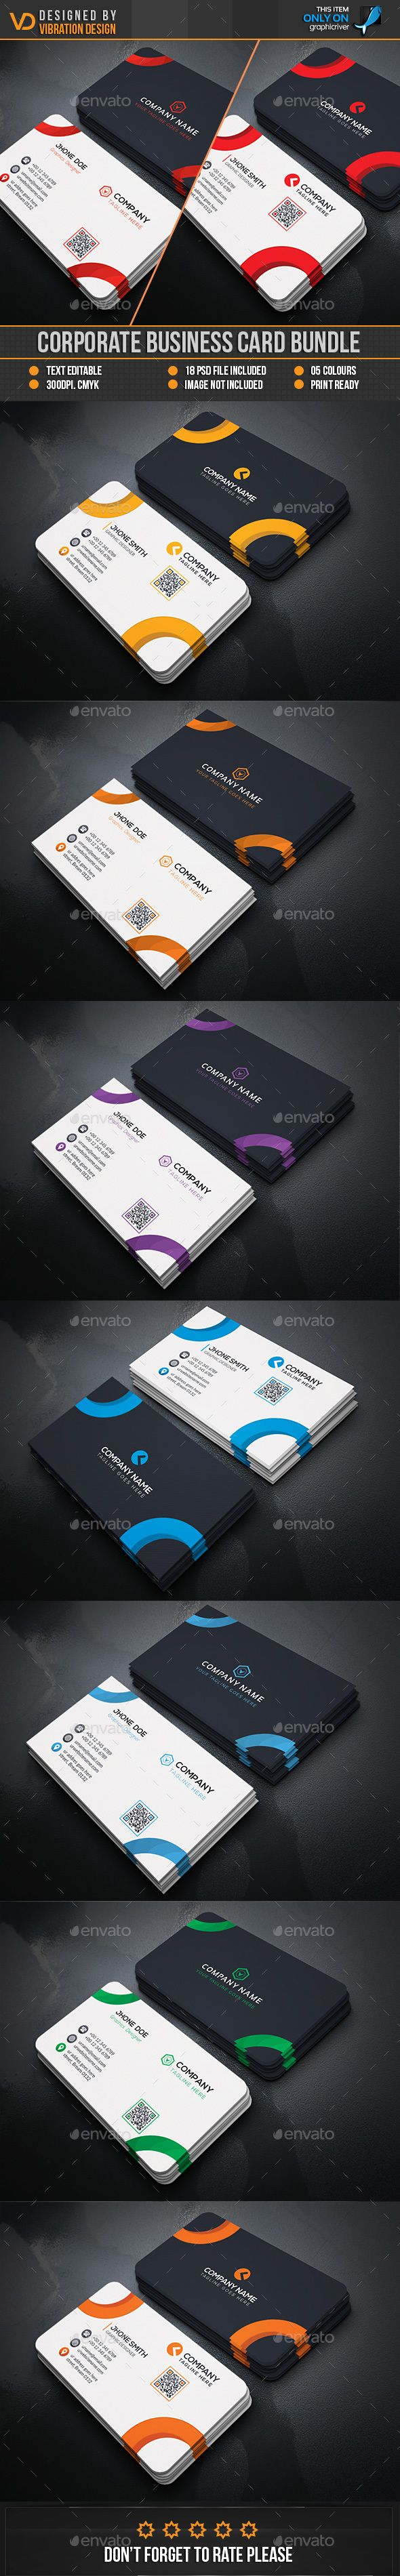 67 Best Business Card Images On Pinterest Business Cards Business